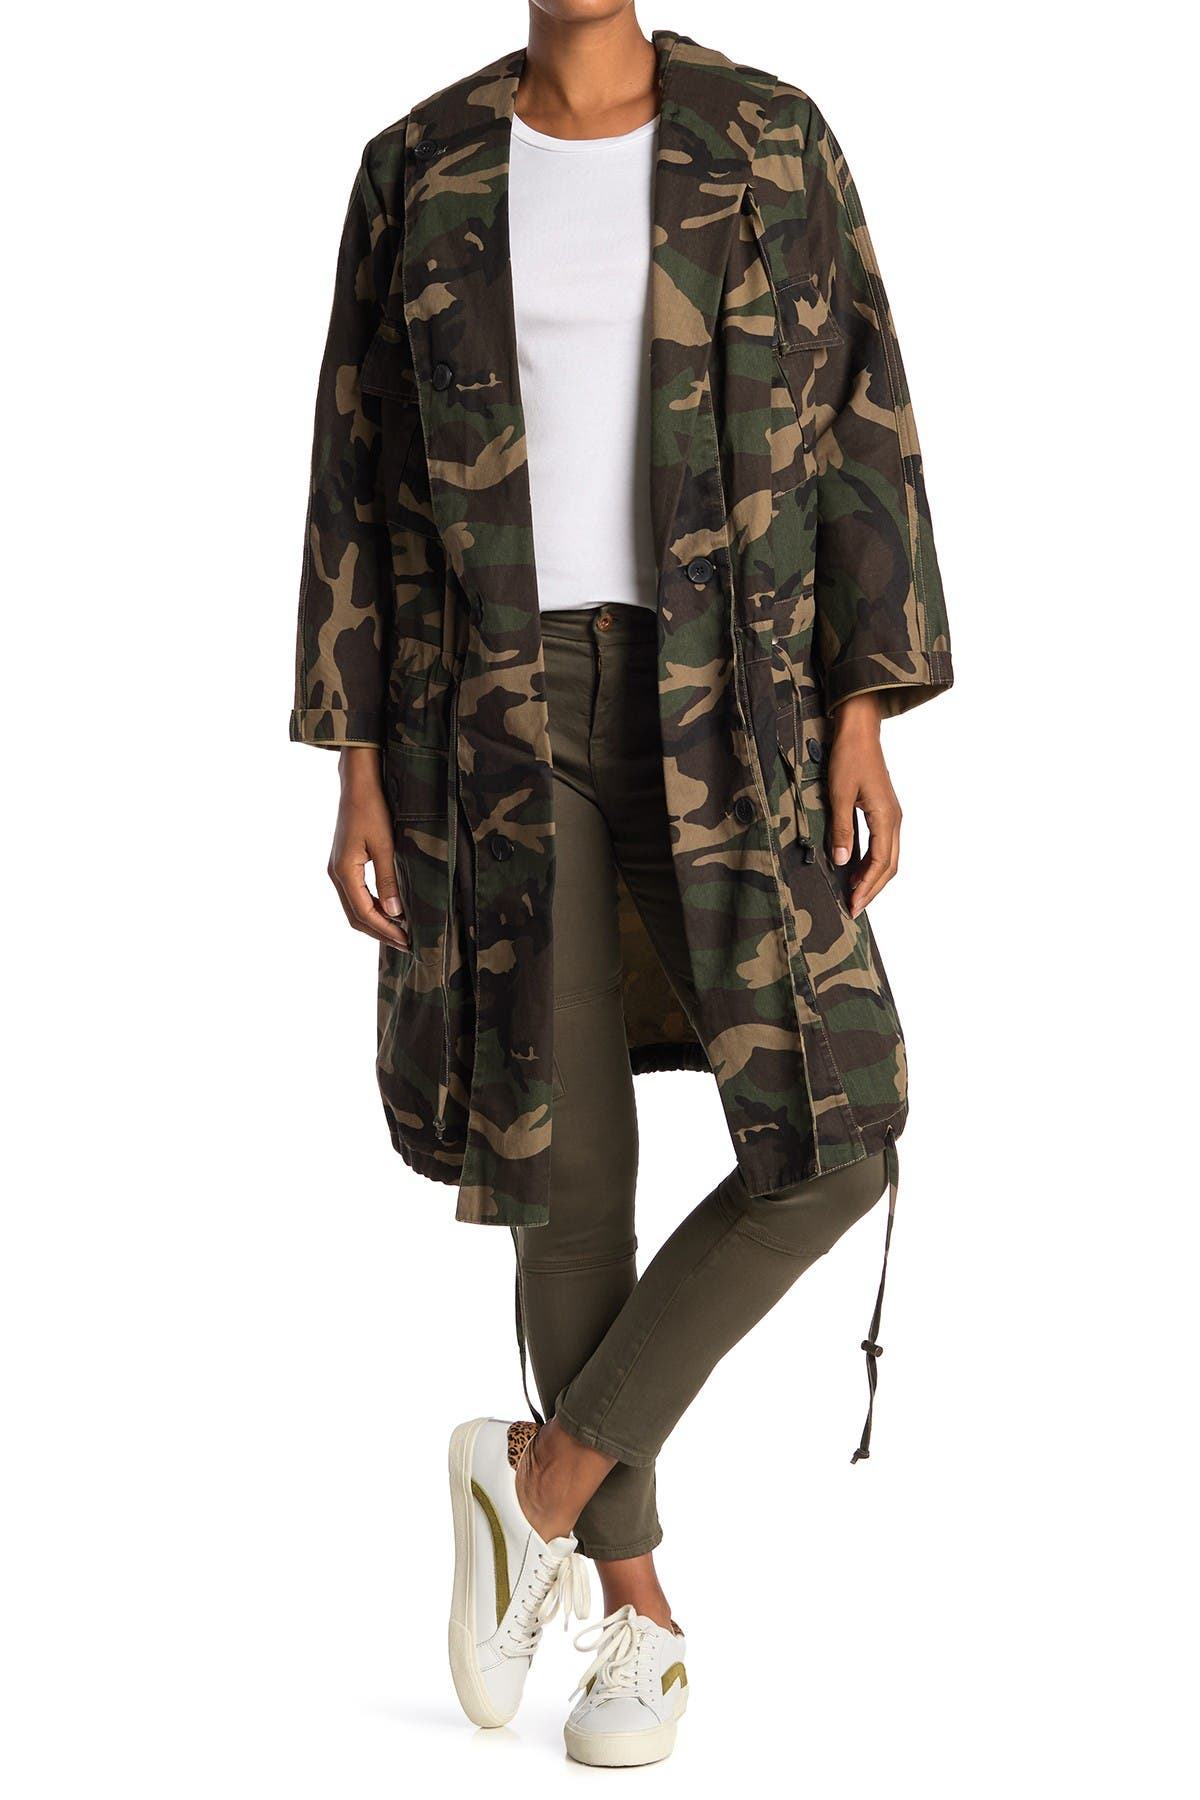 Image of NSF CLOTHING Callie Cocoon Jacket